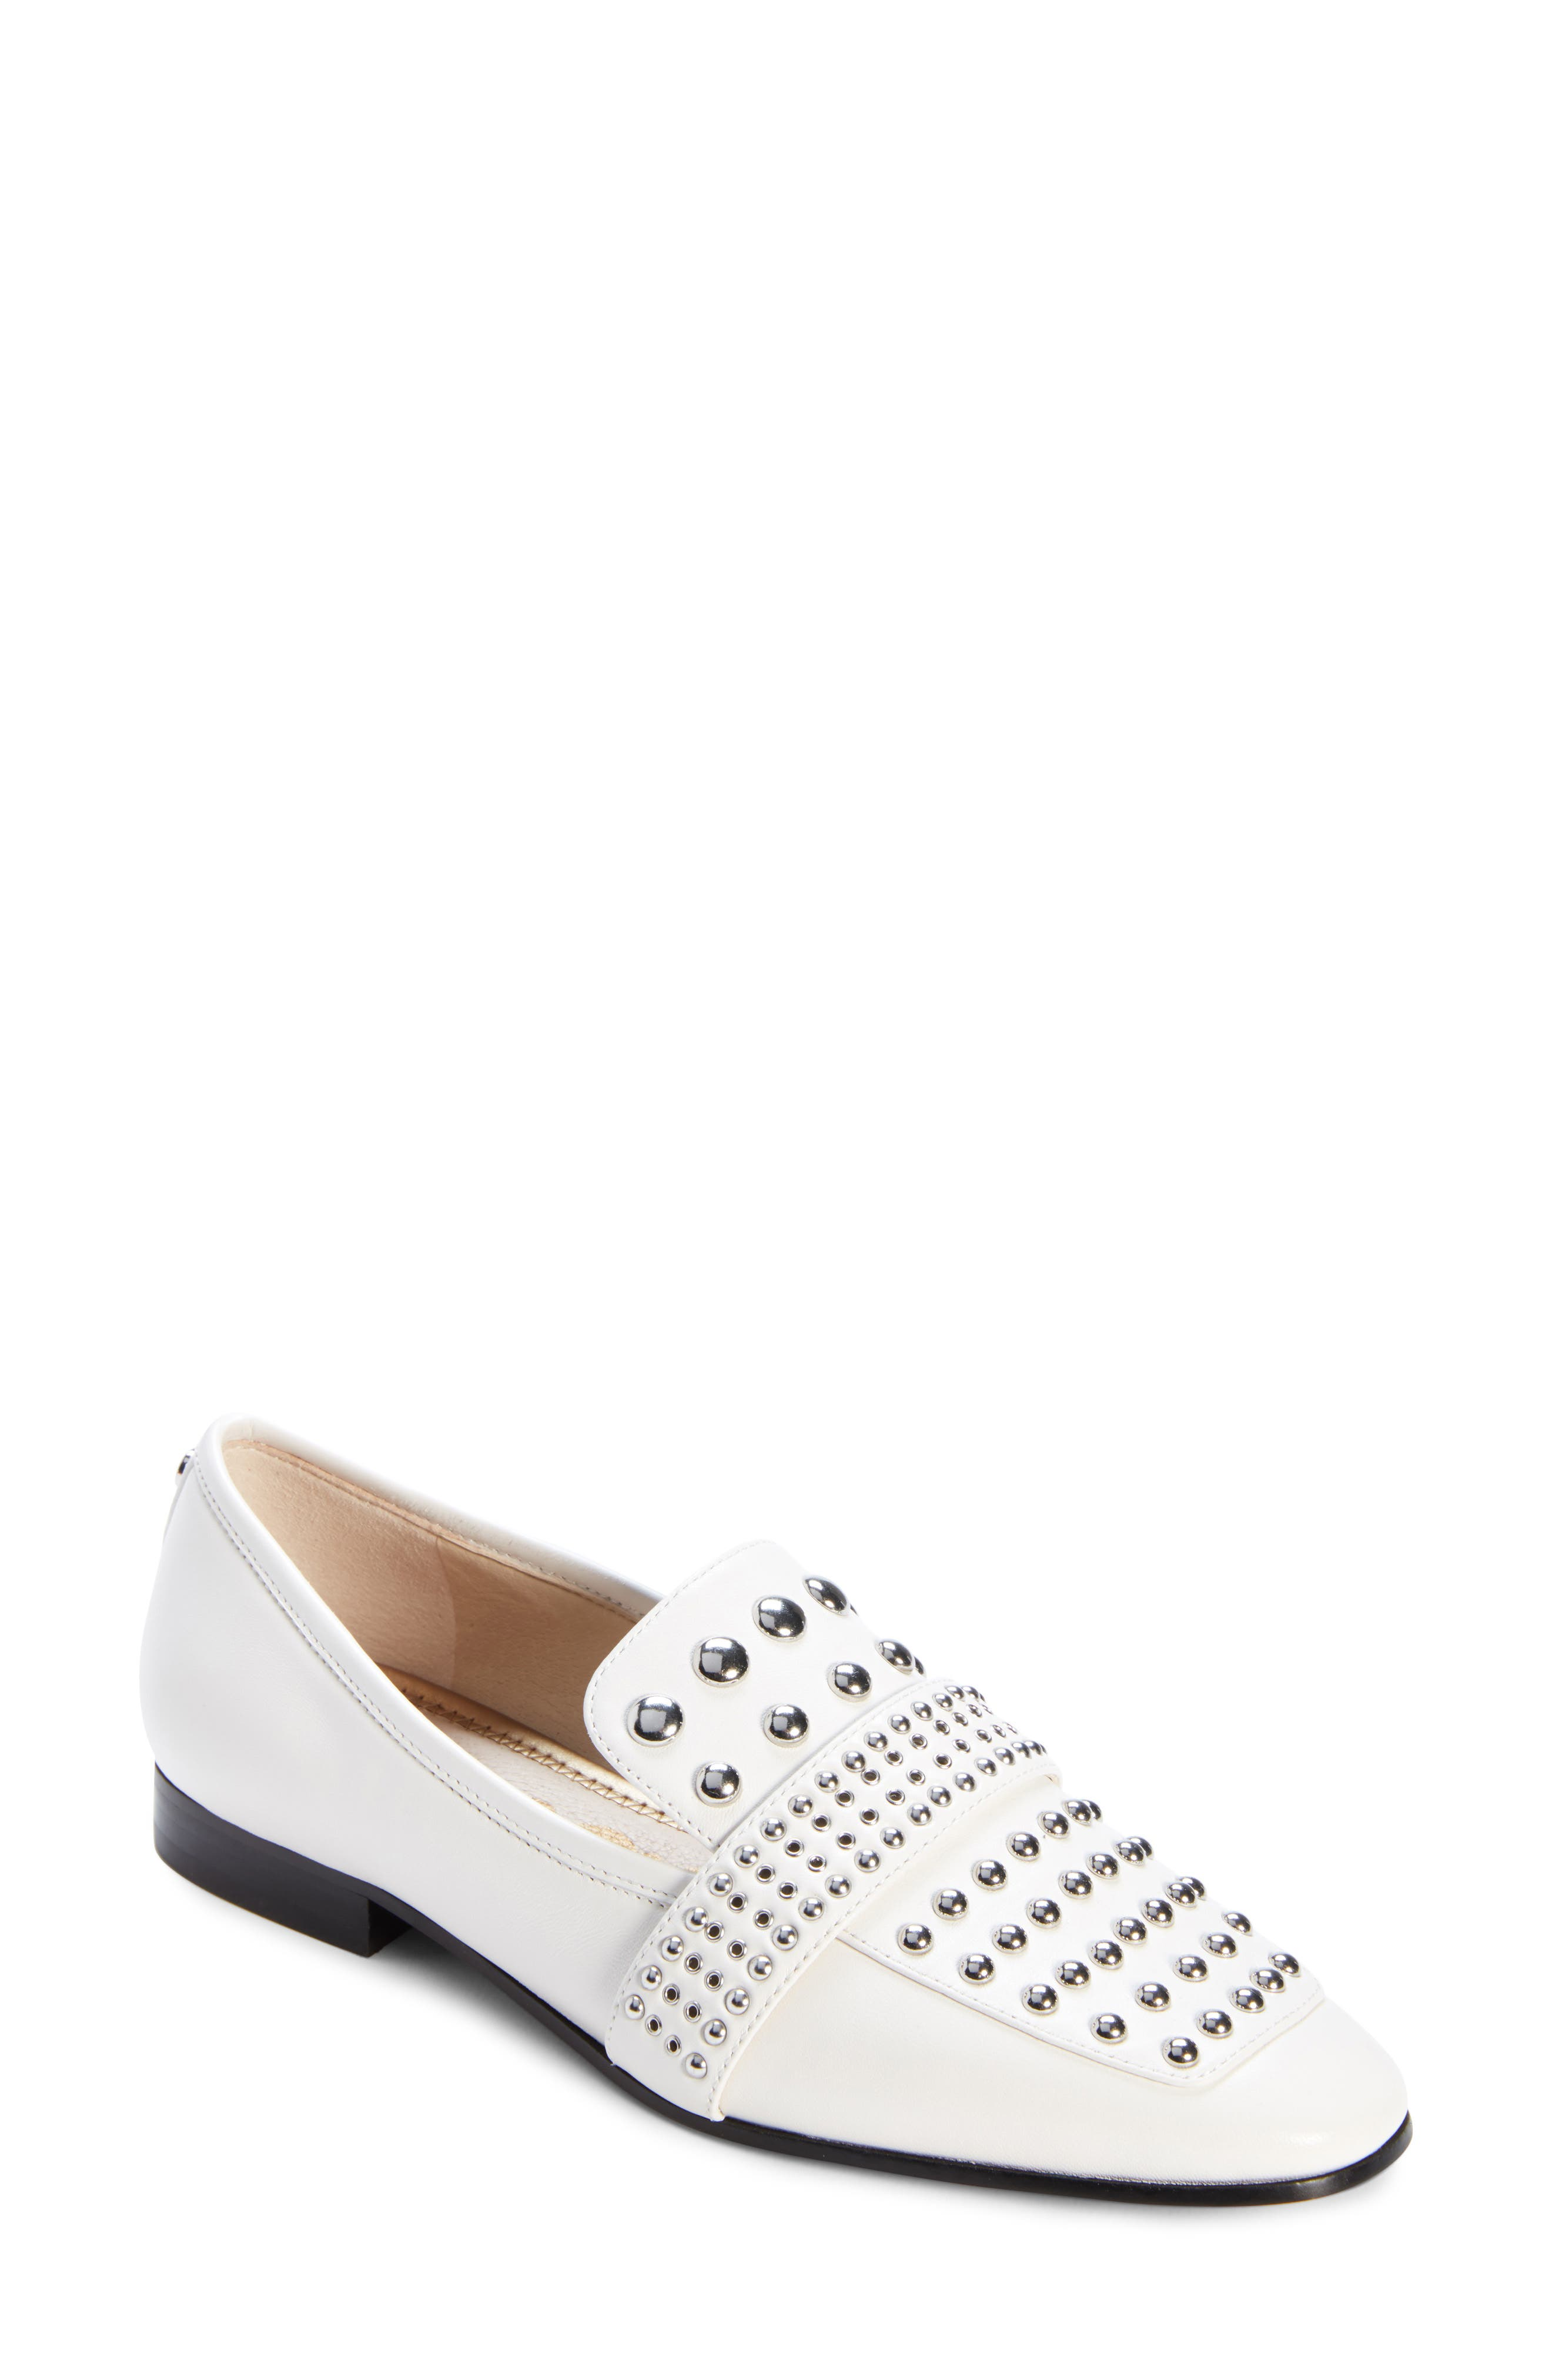 Chesney Loafer,                         Main,                         color, BRIGHT WHITE LEATHER